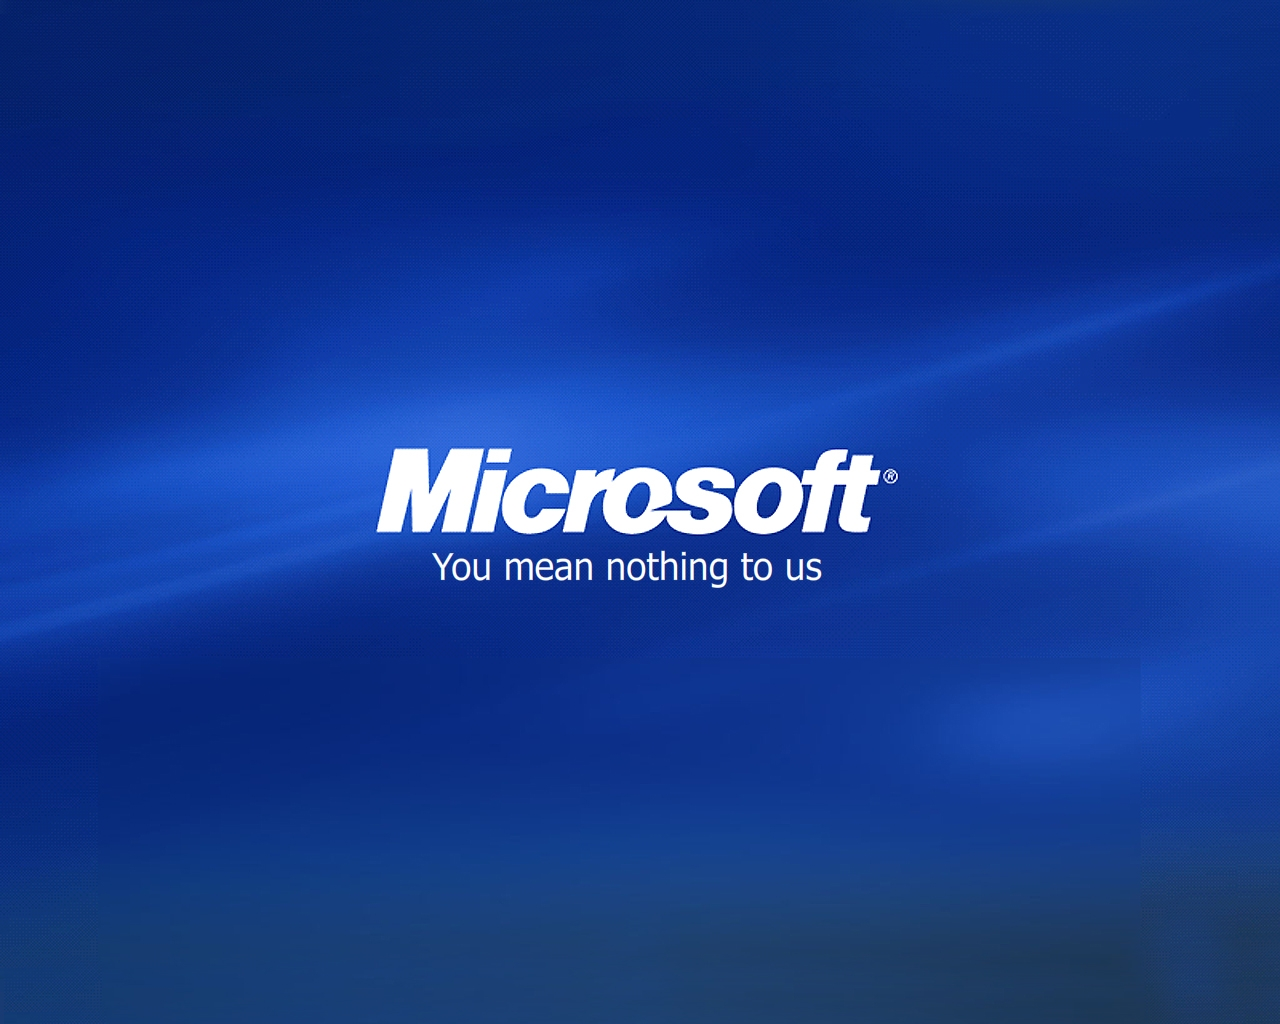 Wallpaper download microsoft - Wallpapers Download Free Pictures Images And Photos Microsoft